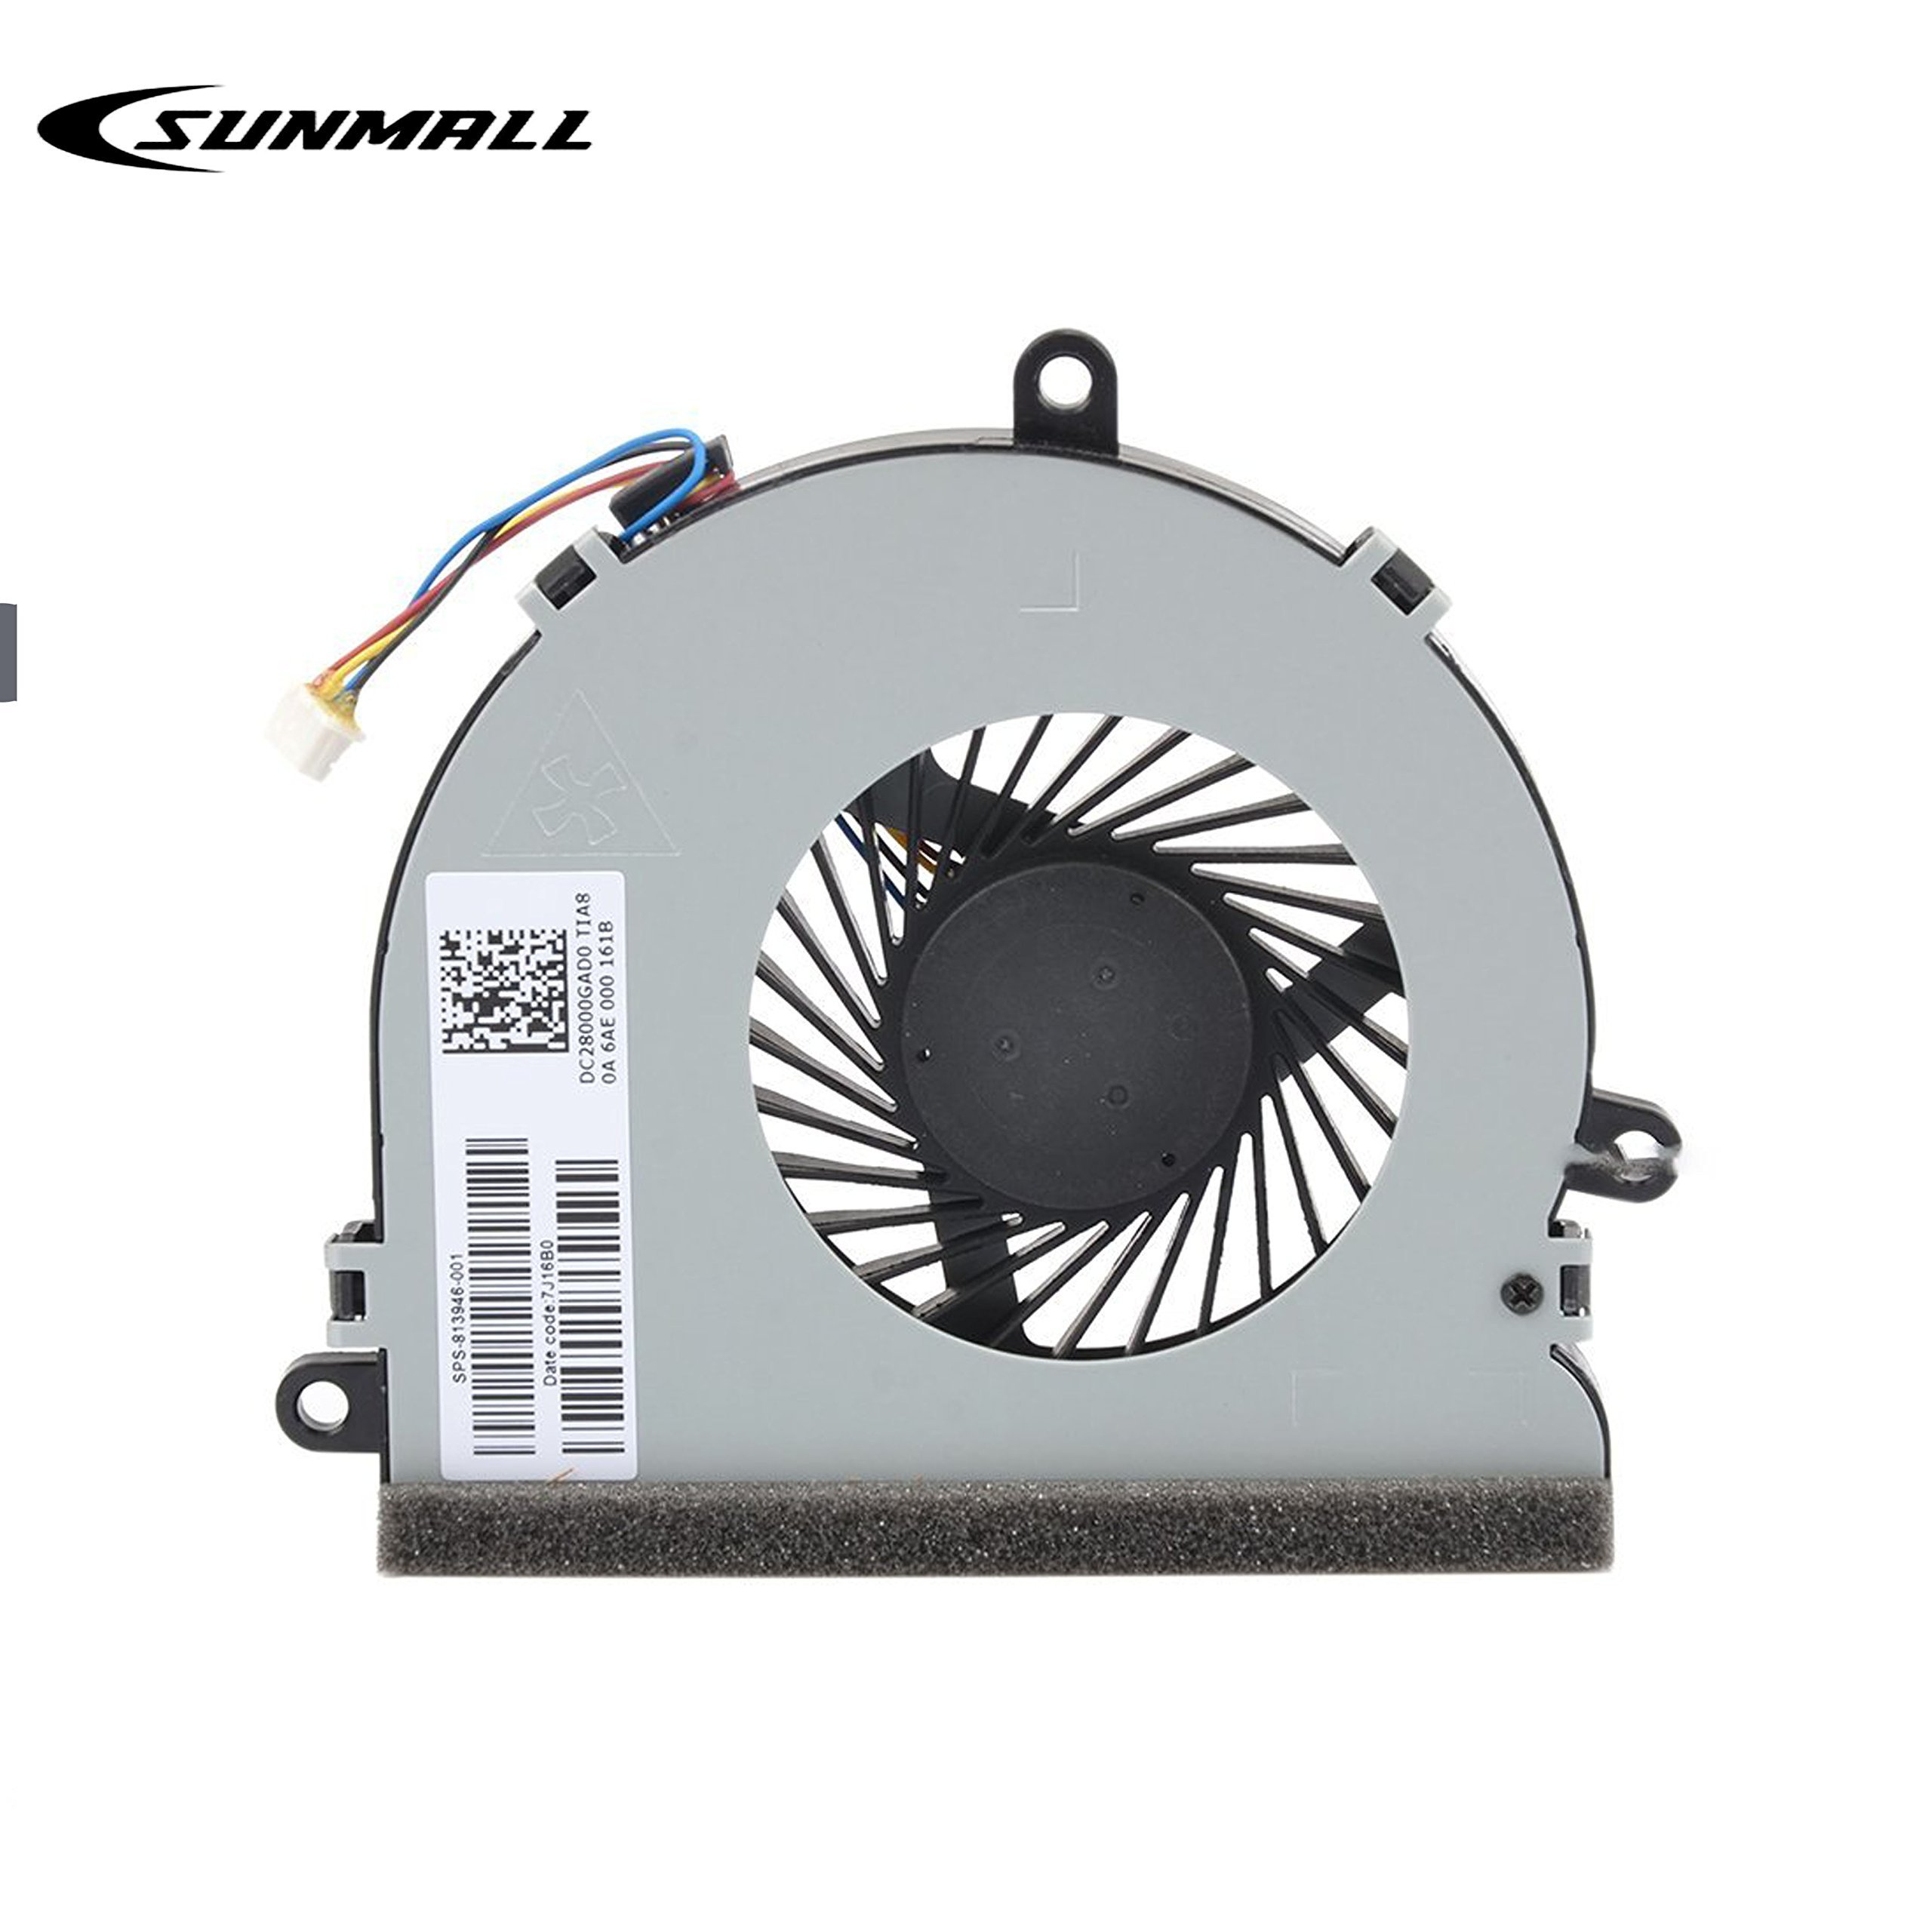 Replacement CPU Cooling Fan For HP 250 G4 255 G4 15-AC 15-AF 15-AC622TX 15-ac032no 15-ac033no 15-ac042ur 15-ac121dx 15-ac029ds 15-ac120nr 15-ac137cl 15-ac023ur series SPS 813946-001 (4-Pin 4-Wire)